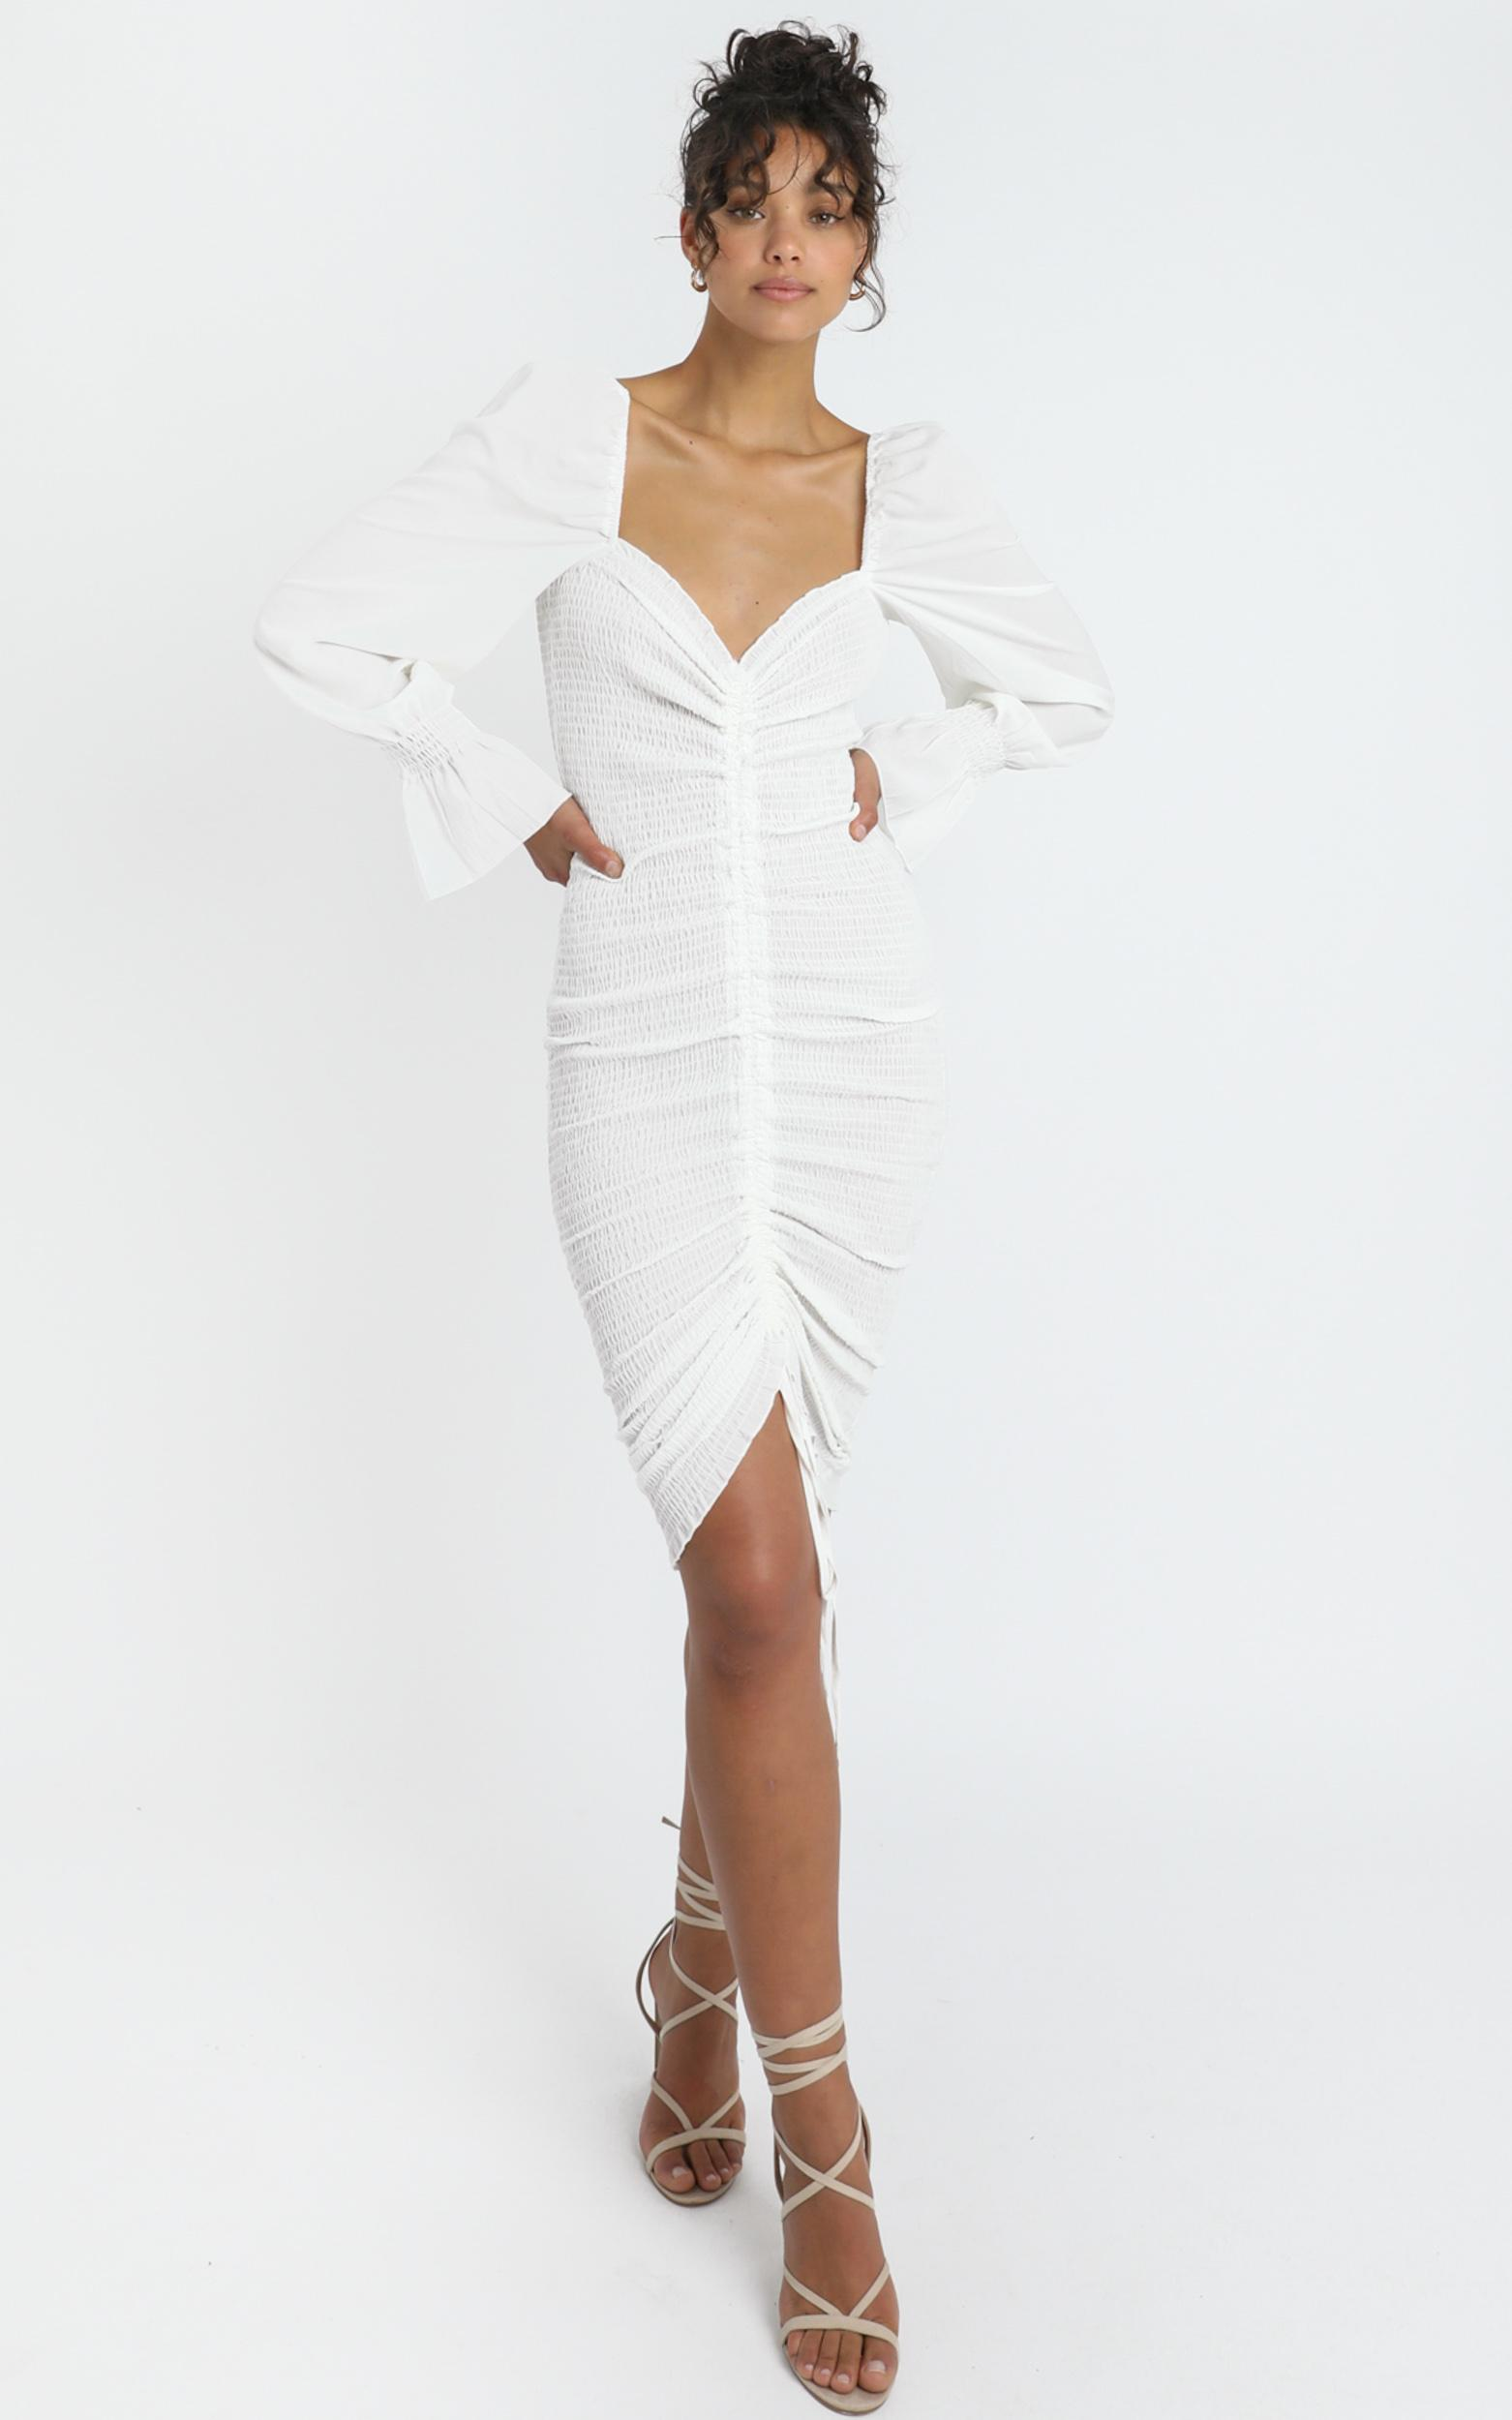 Megan Dress in White - 6 (XS), White, hi-res image number null